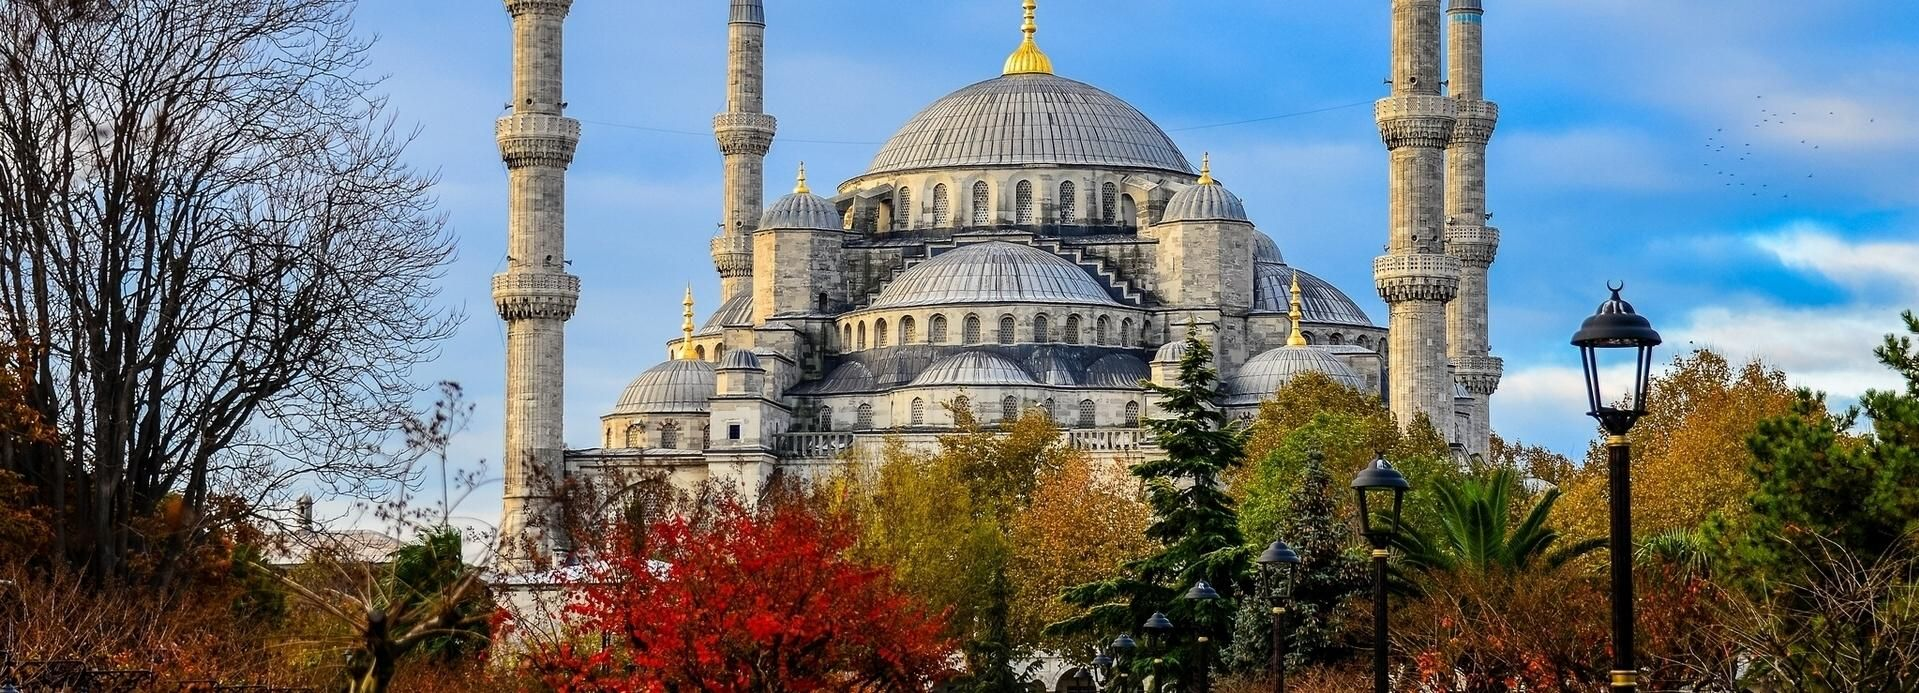 Hagia Sophia and Blue Mosque Small Group Tour